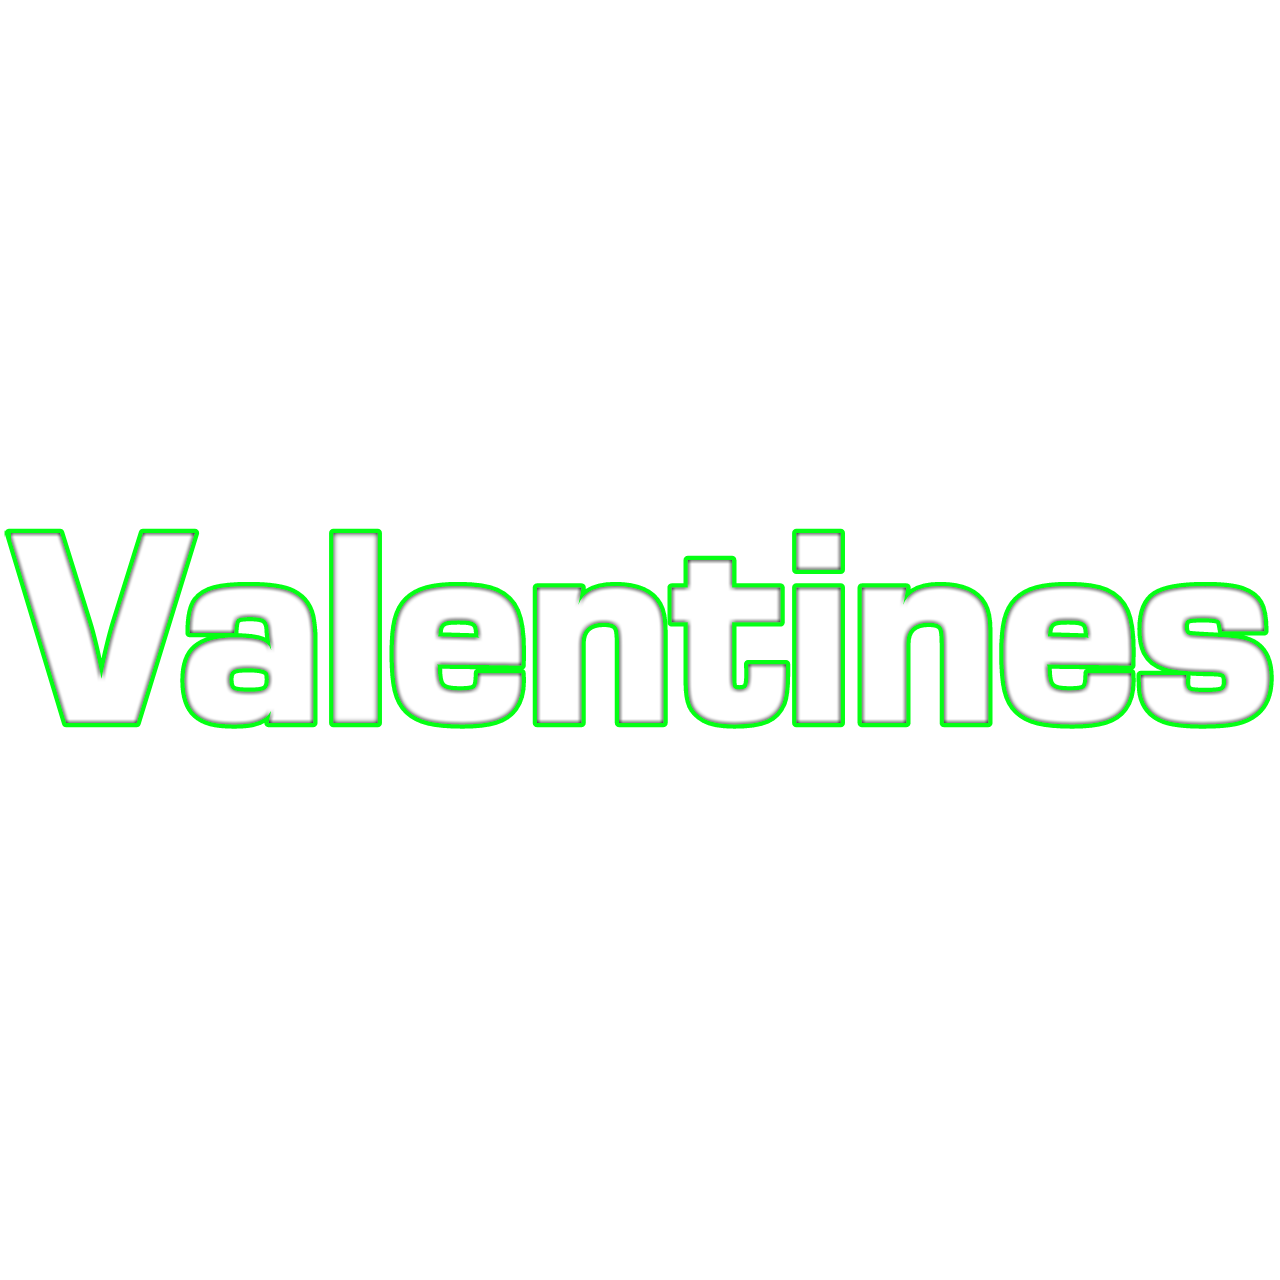 Valentines png